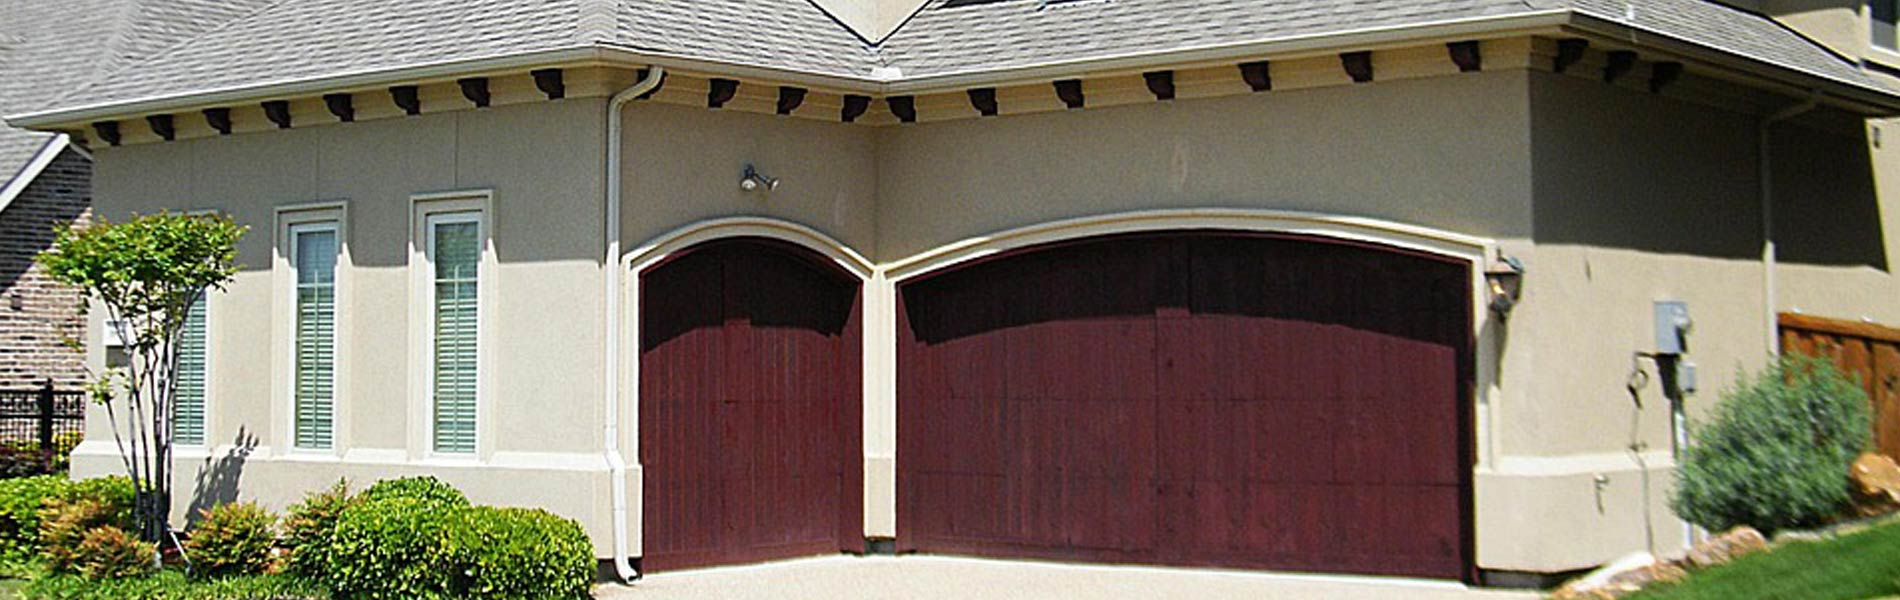 Orlando Garage Door Shop Orlando, FL 407-907-6531